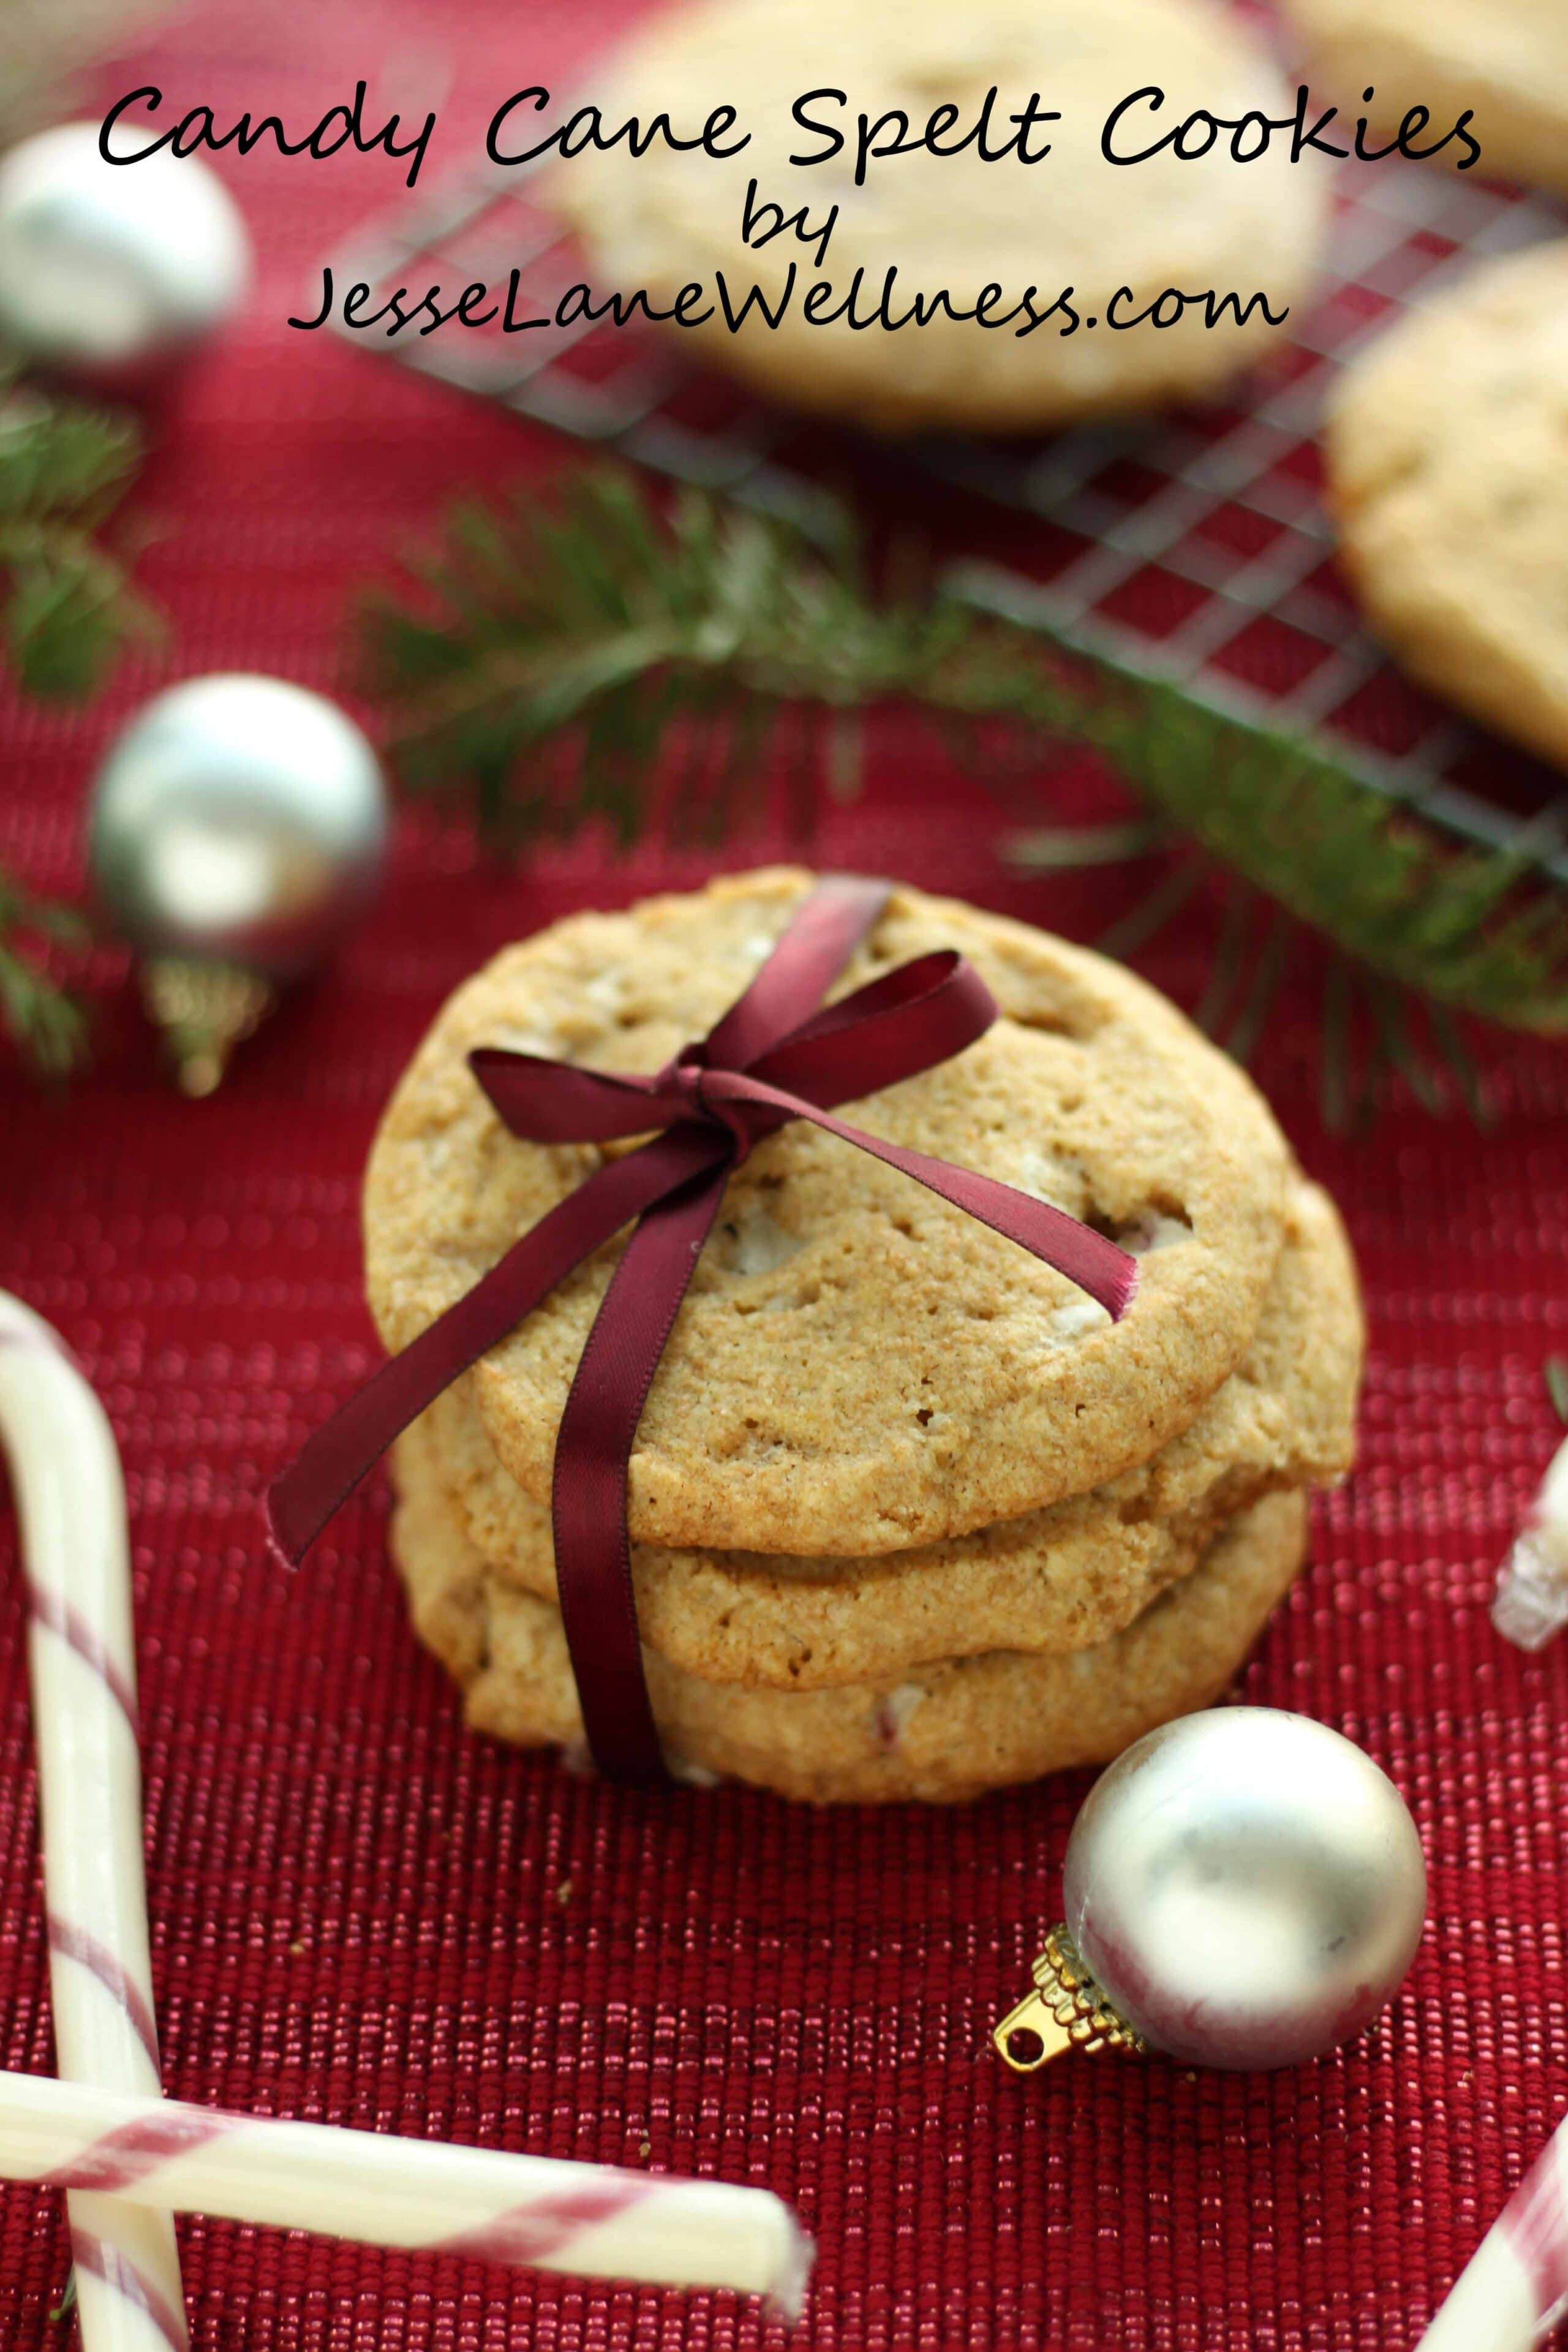 Candy Cane Spelt Cookies by @jesselwellness #christmas #speltcookies